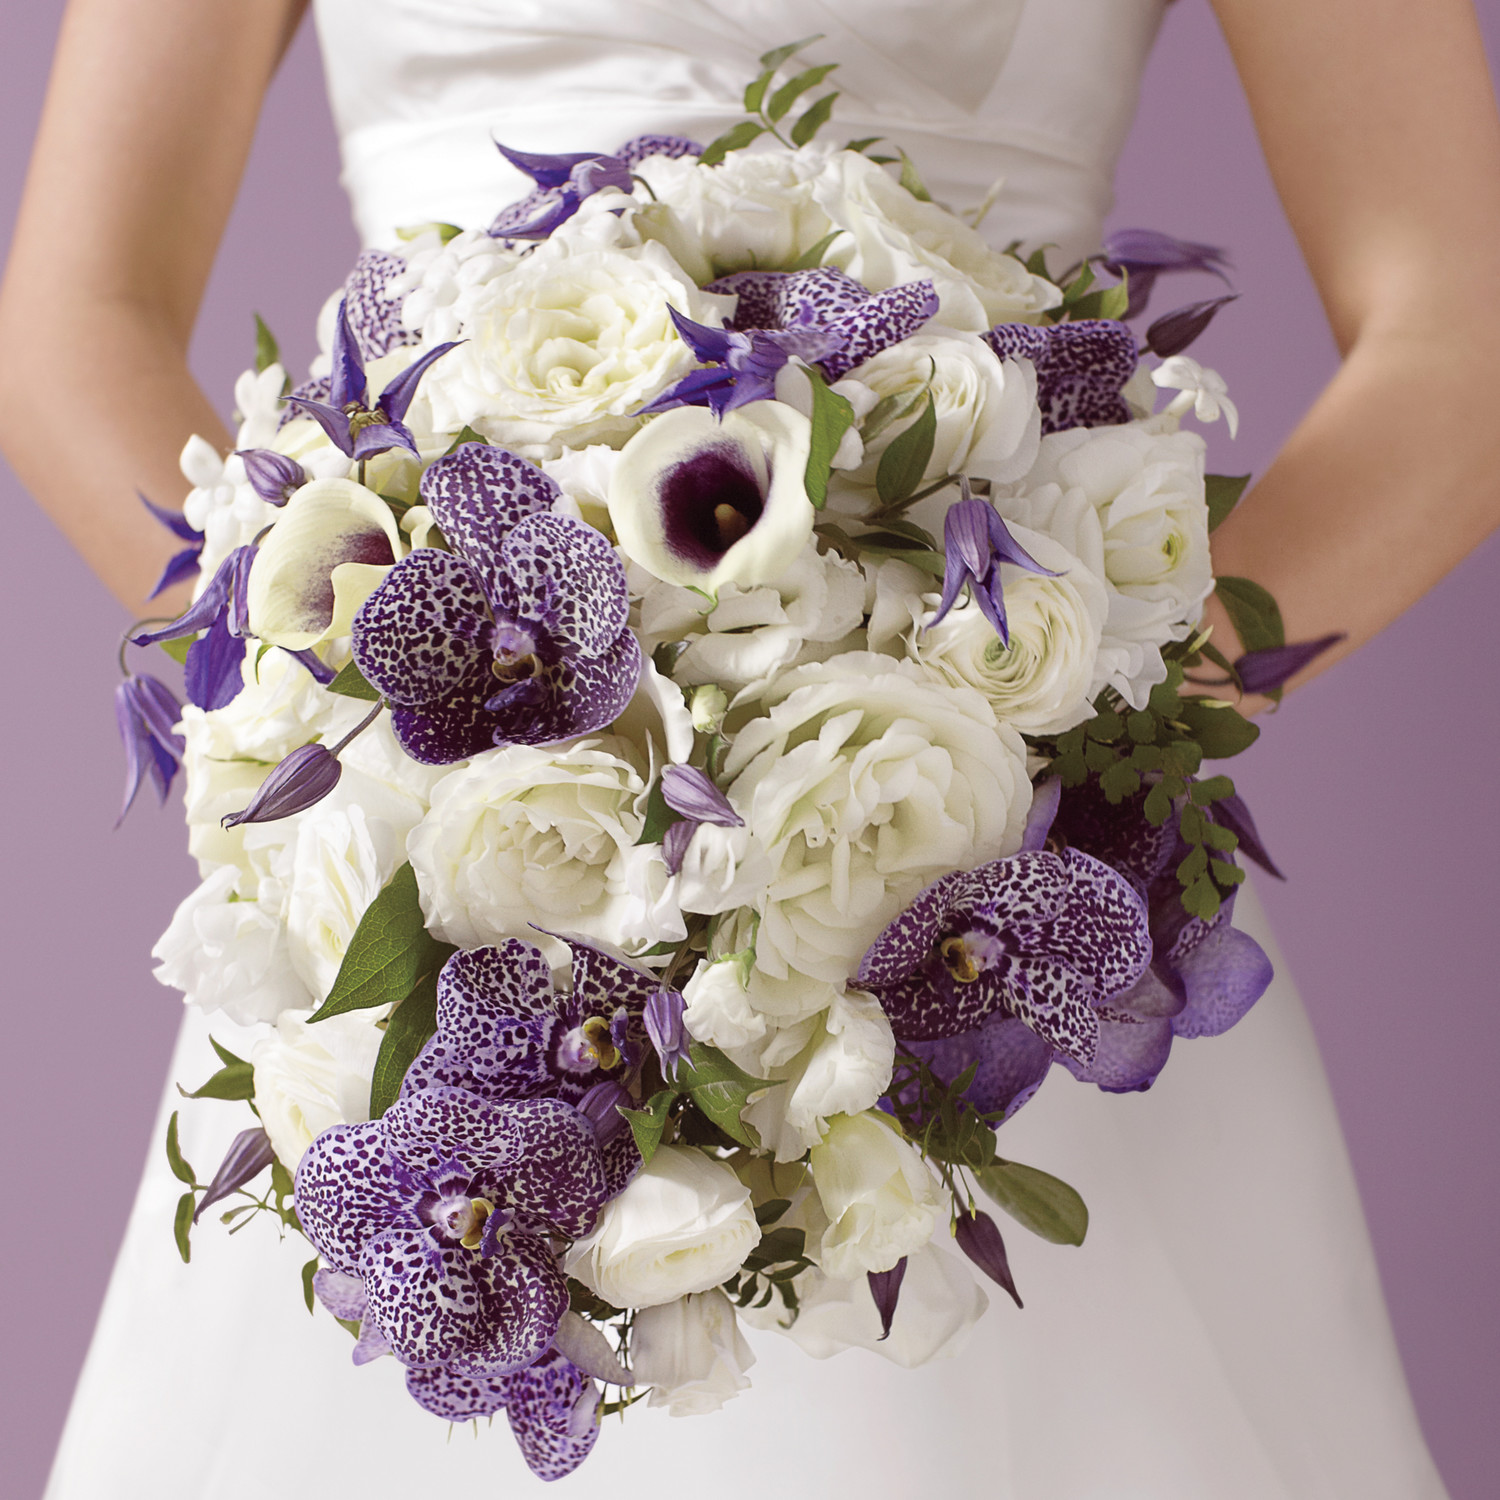 Cool weather wedding flowers martha stewart weddings for Bridal flower bouquets ideas